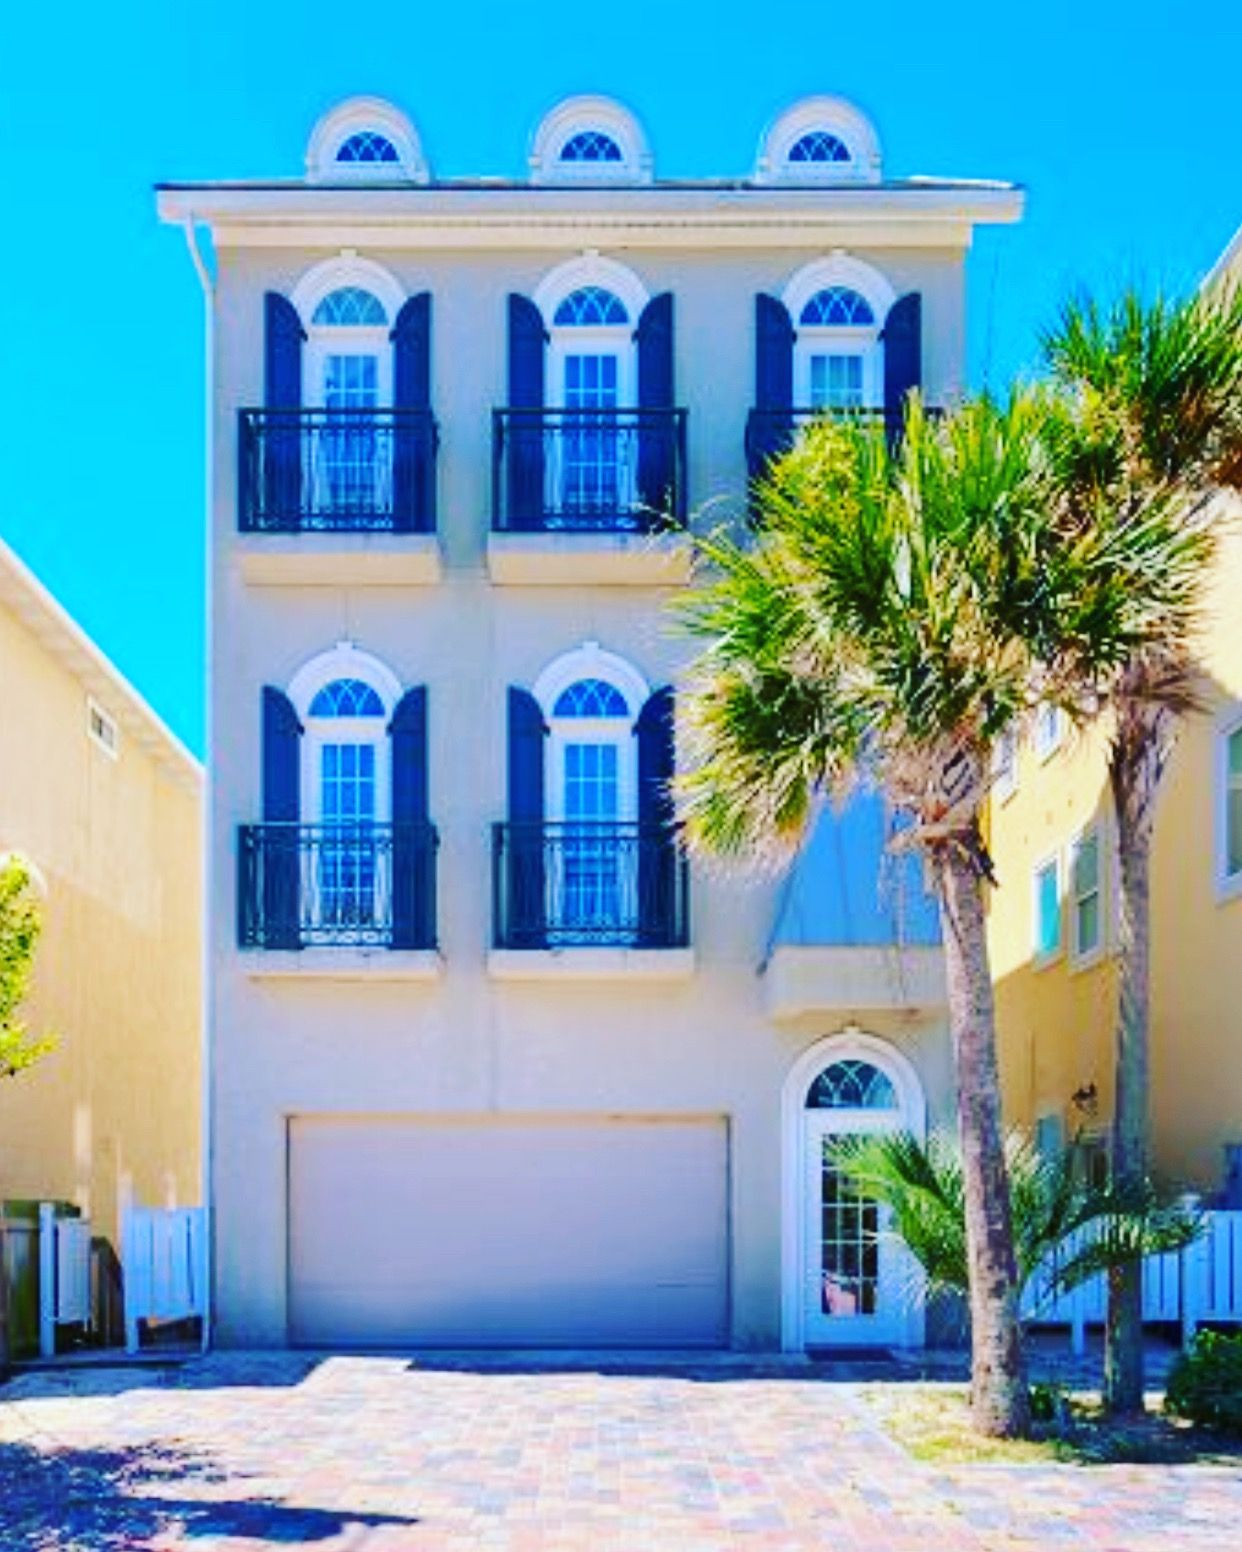 rentals cottages fl heaven by vacation scenic nantucket destin seagrove southern blue